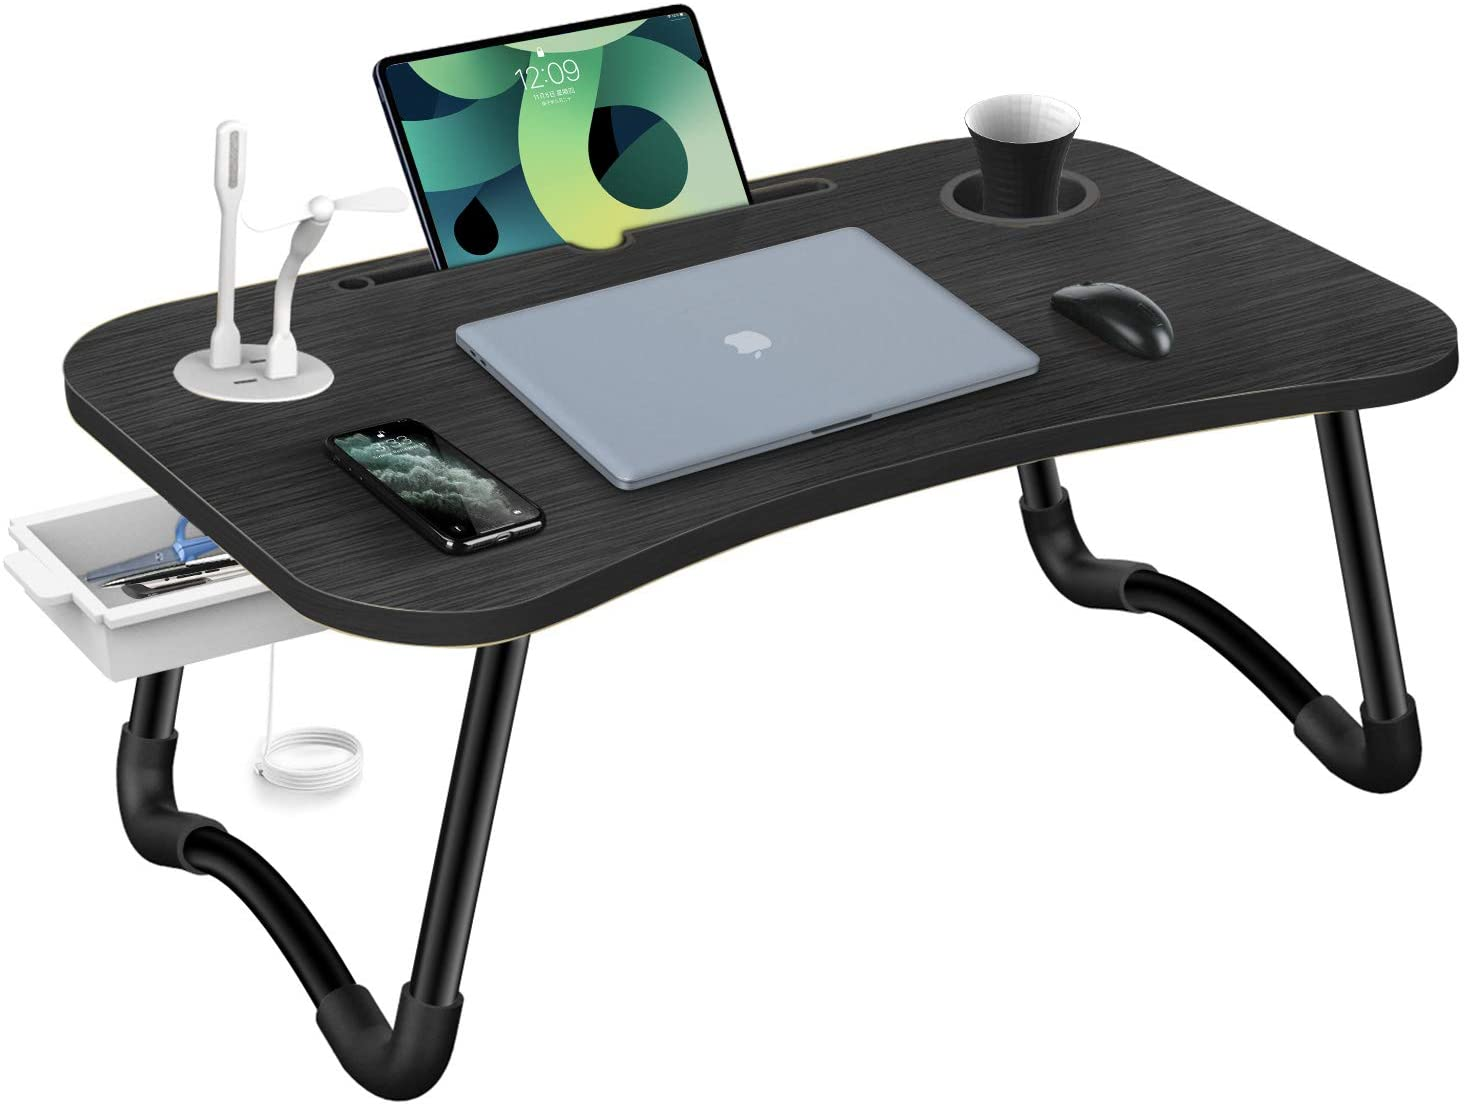 Review of - HLHome Laptop Bed Desk,Portable Foldable Laptop Bed Tray Table with USB Charger